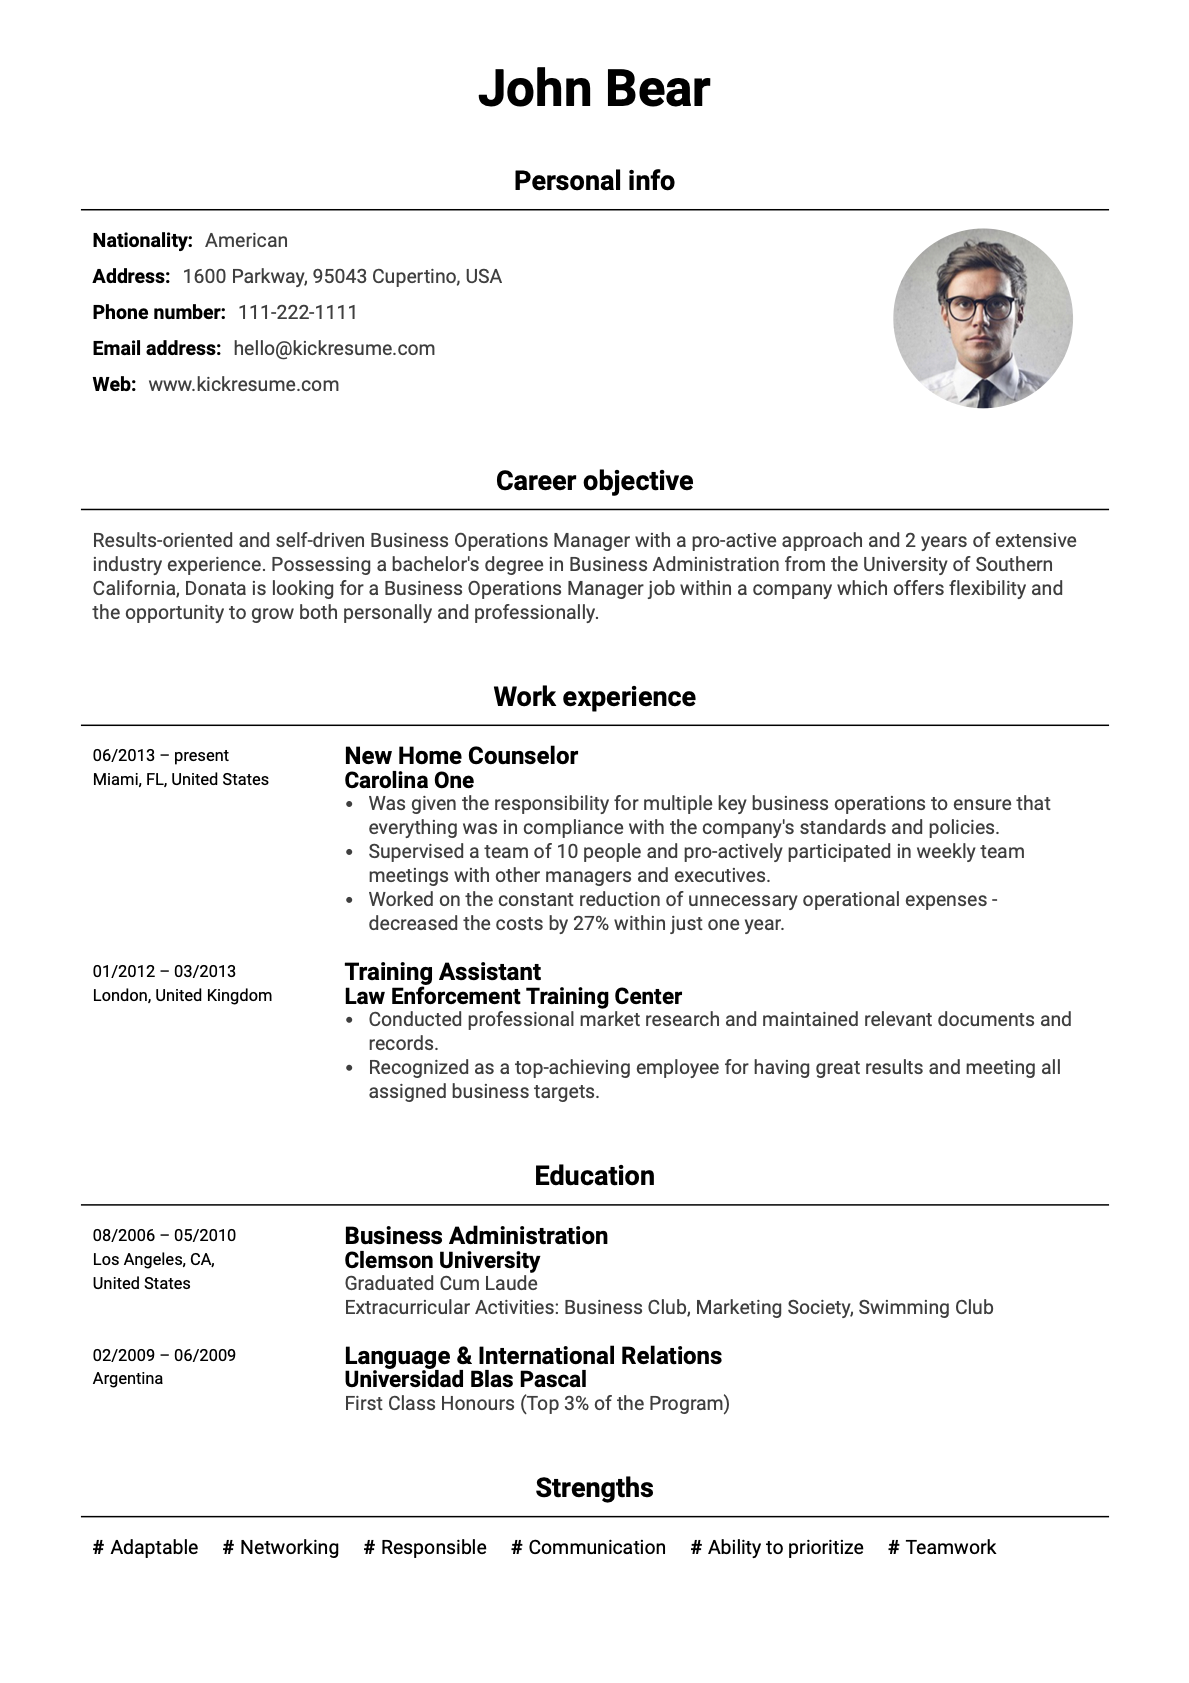 Business Operations Manager Resume Sample Cover Letter For Resume Job Resume Examples Online Resume